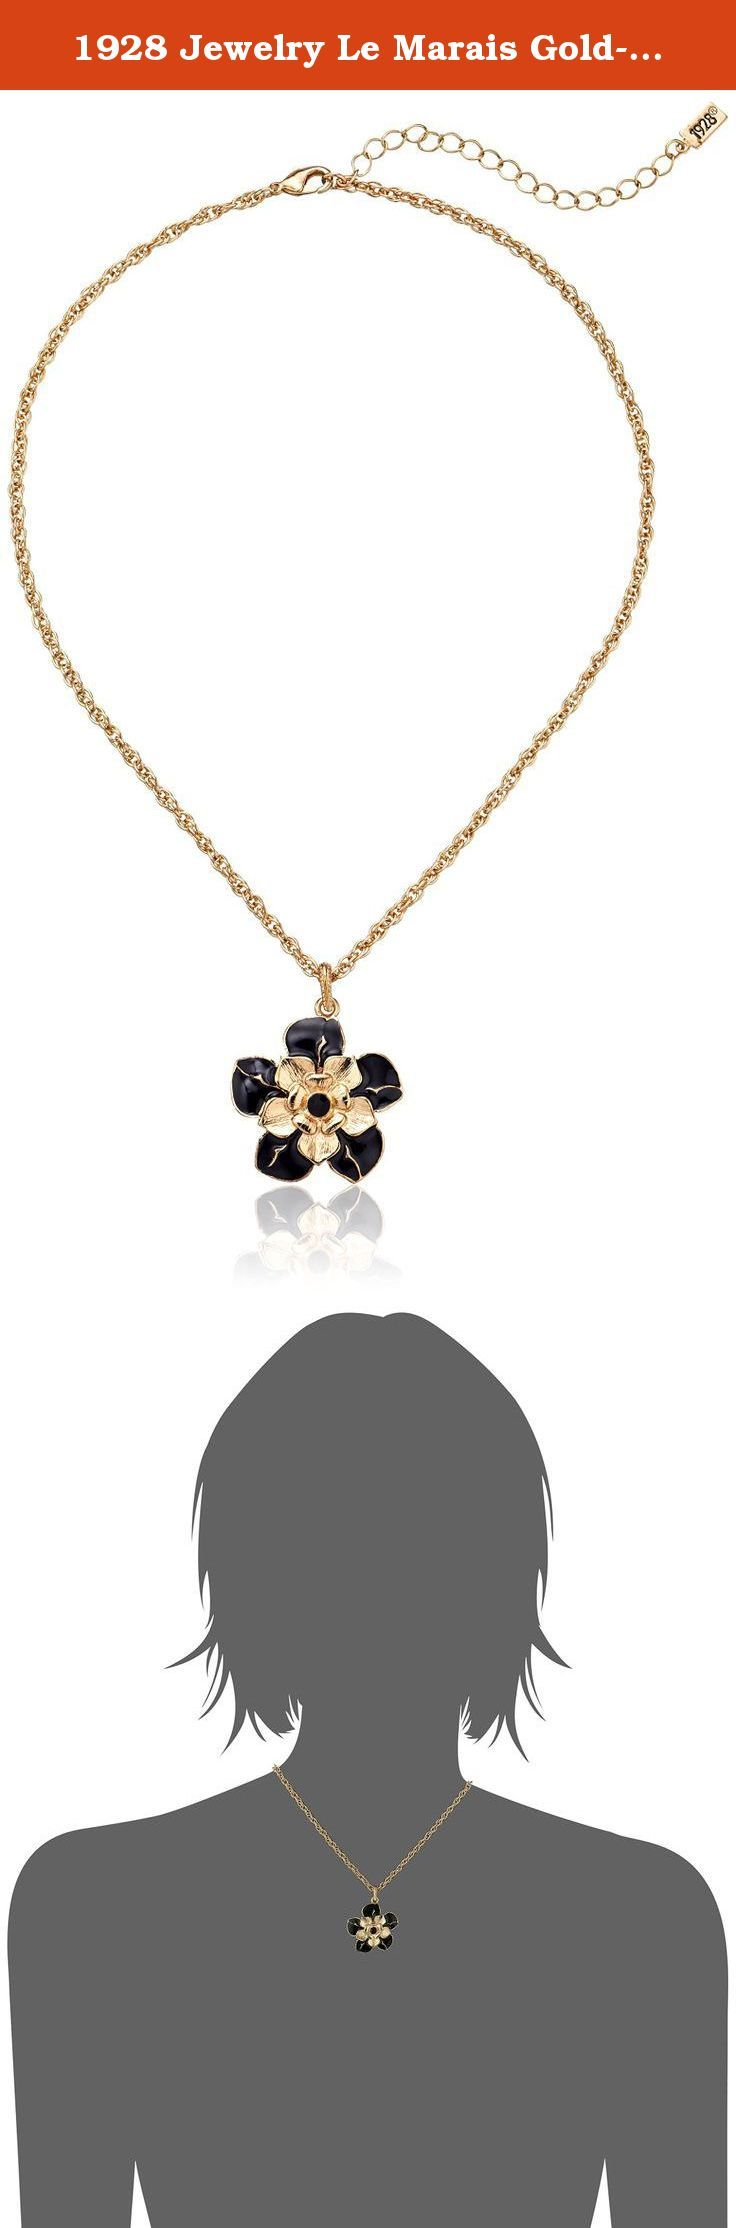 """1928 Jewelry Le Marais Gold-Tone Enamel Flower Pendant Necklace, 16"""". This 16"""" adjustable gold-toned chain features a gilded pendant with black enameled petals. Two sets of gold-toned flowers are layered above the black petals while a black crystal dots the center of the entire pendant."""